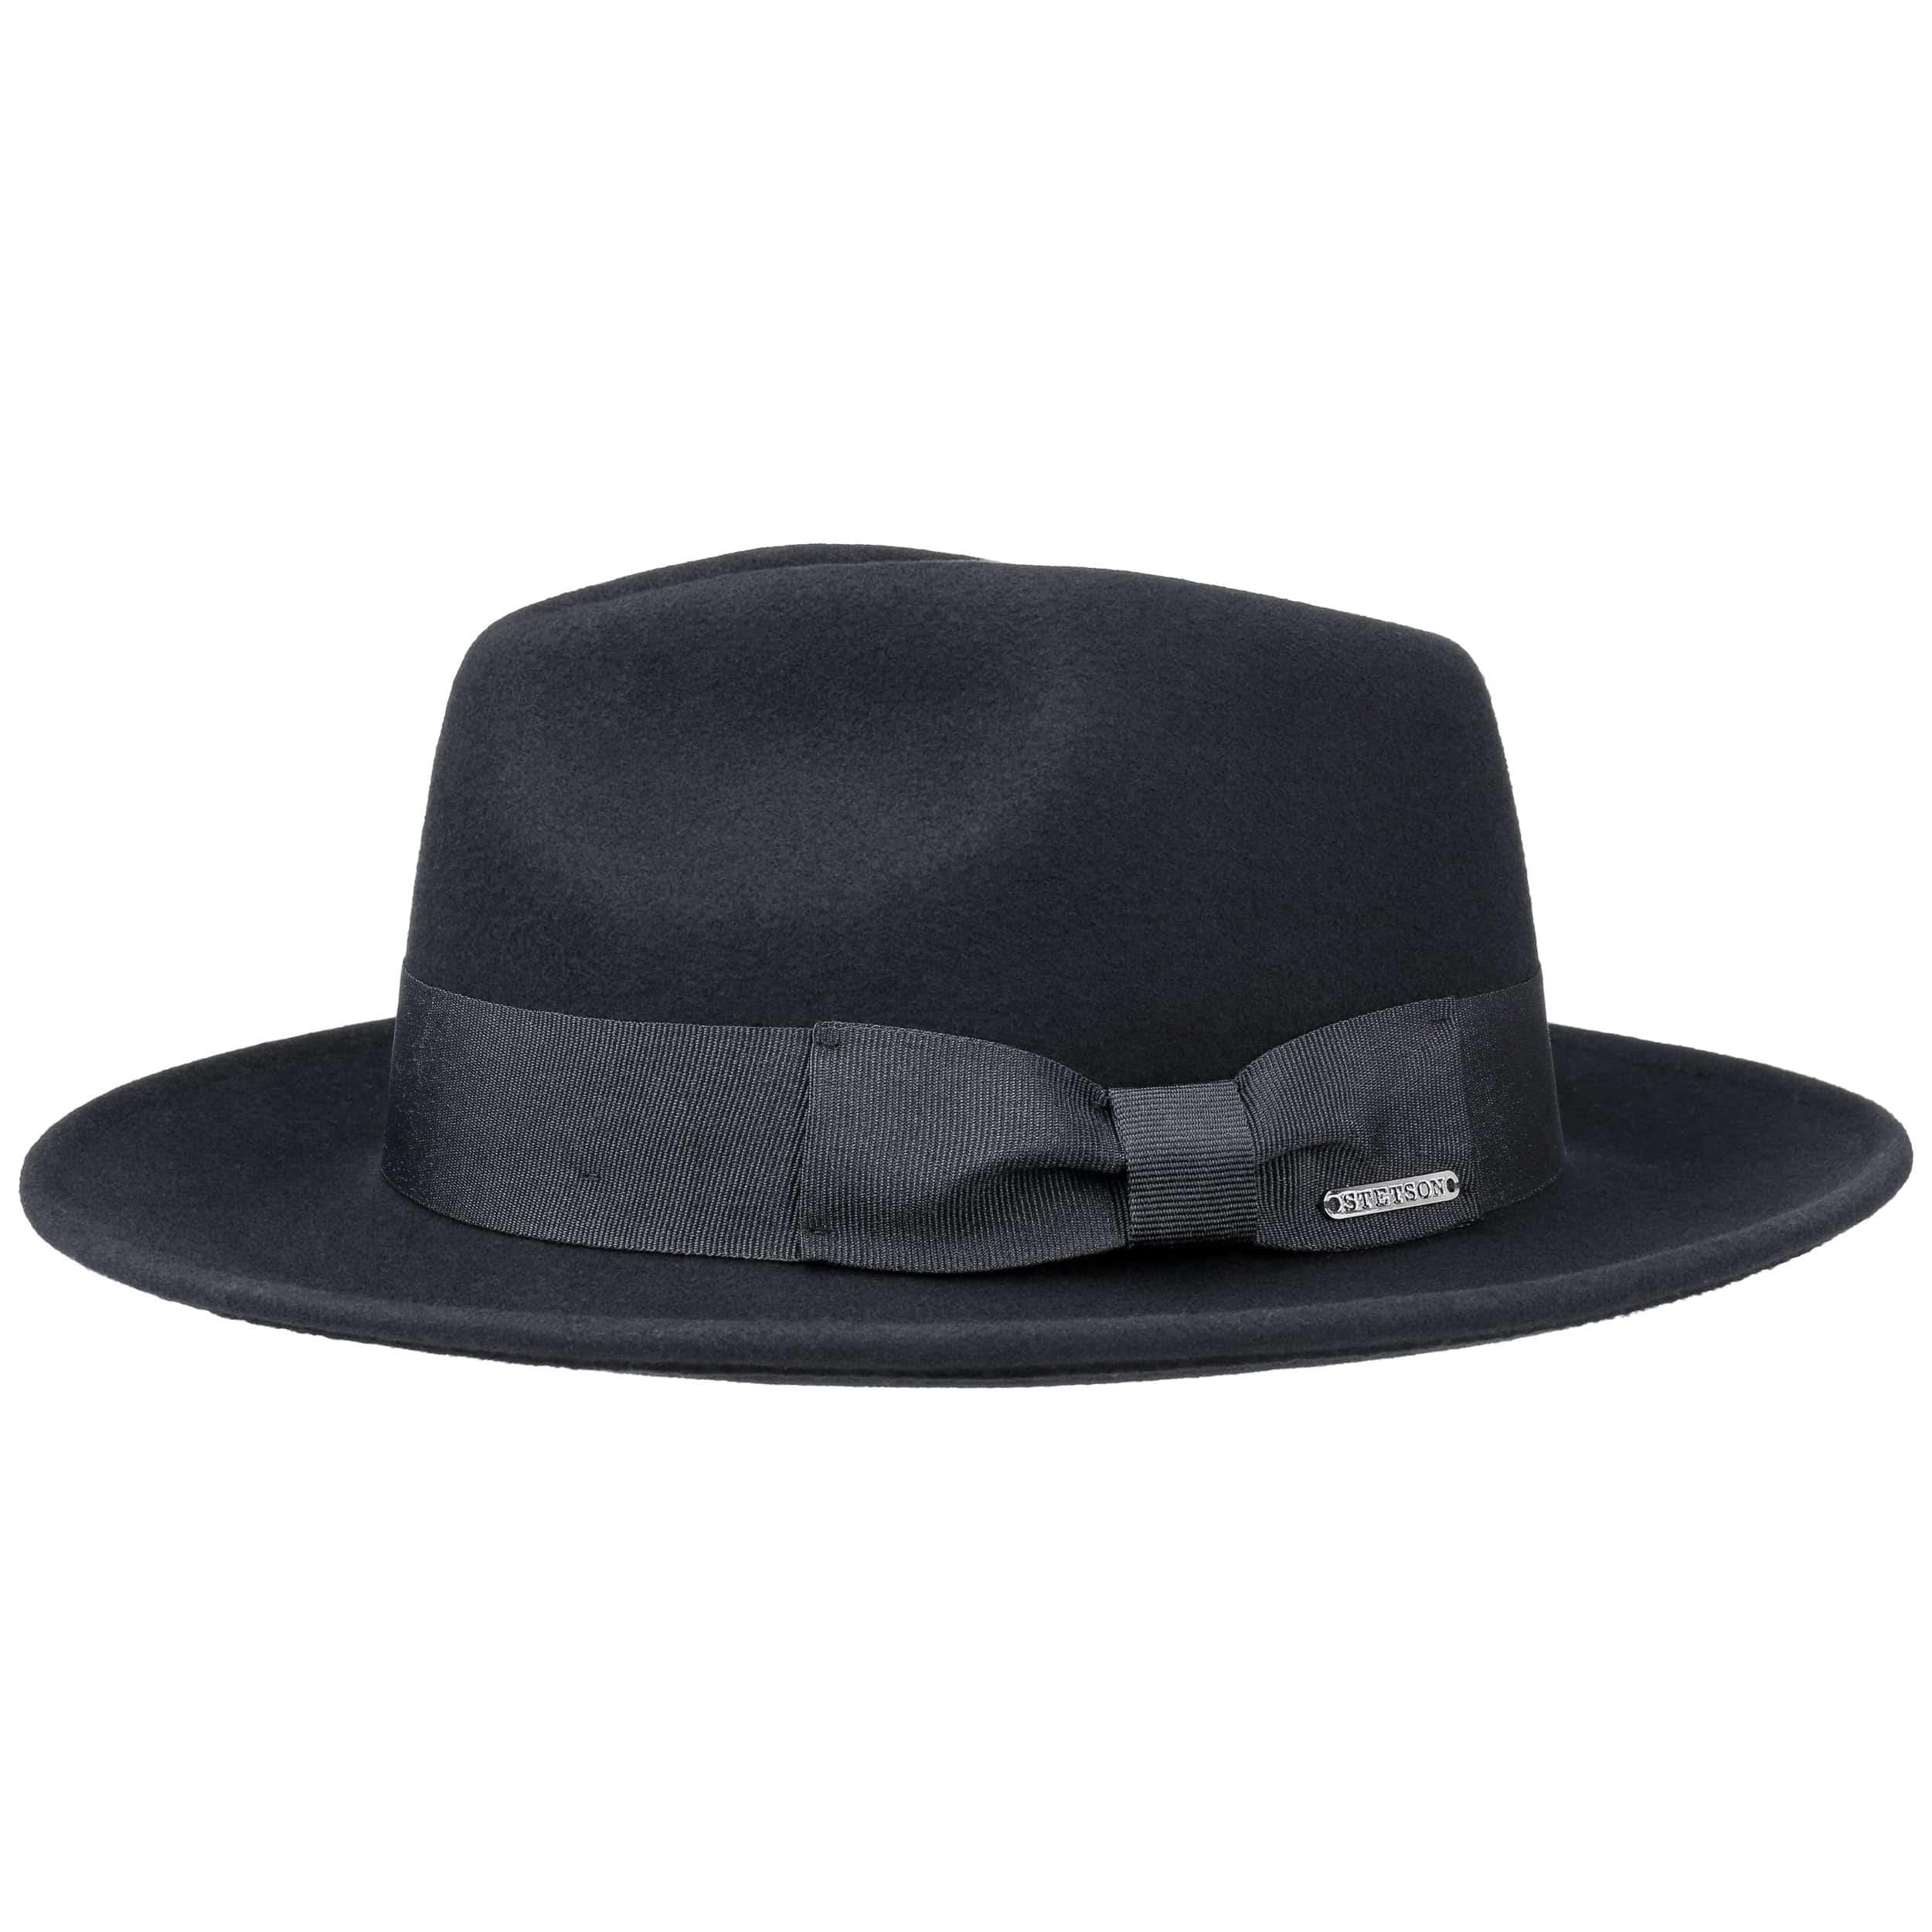 14301304f2c327 Tarveston Fedora Hat with Cashmere by Stetson - 79,00 €